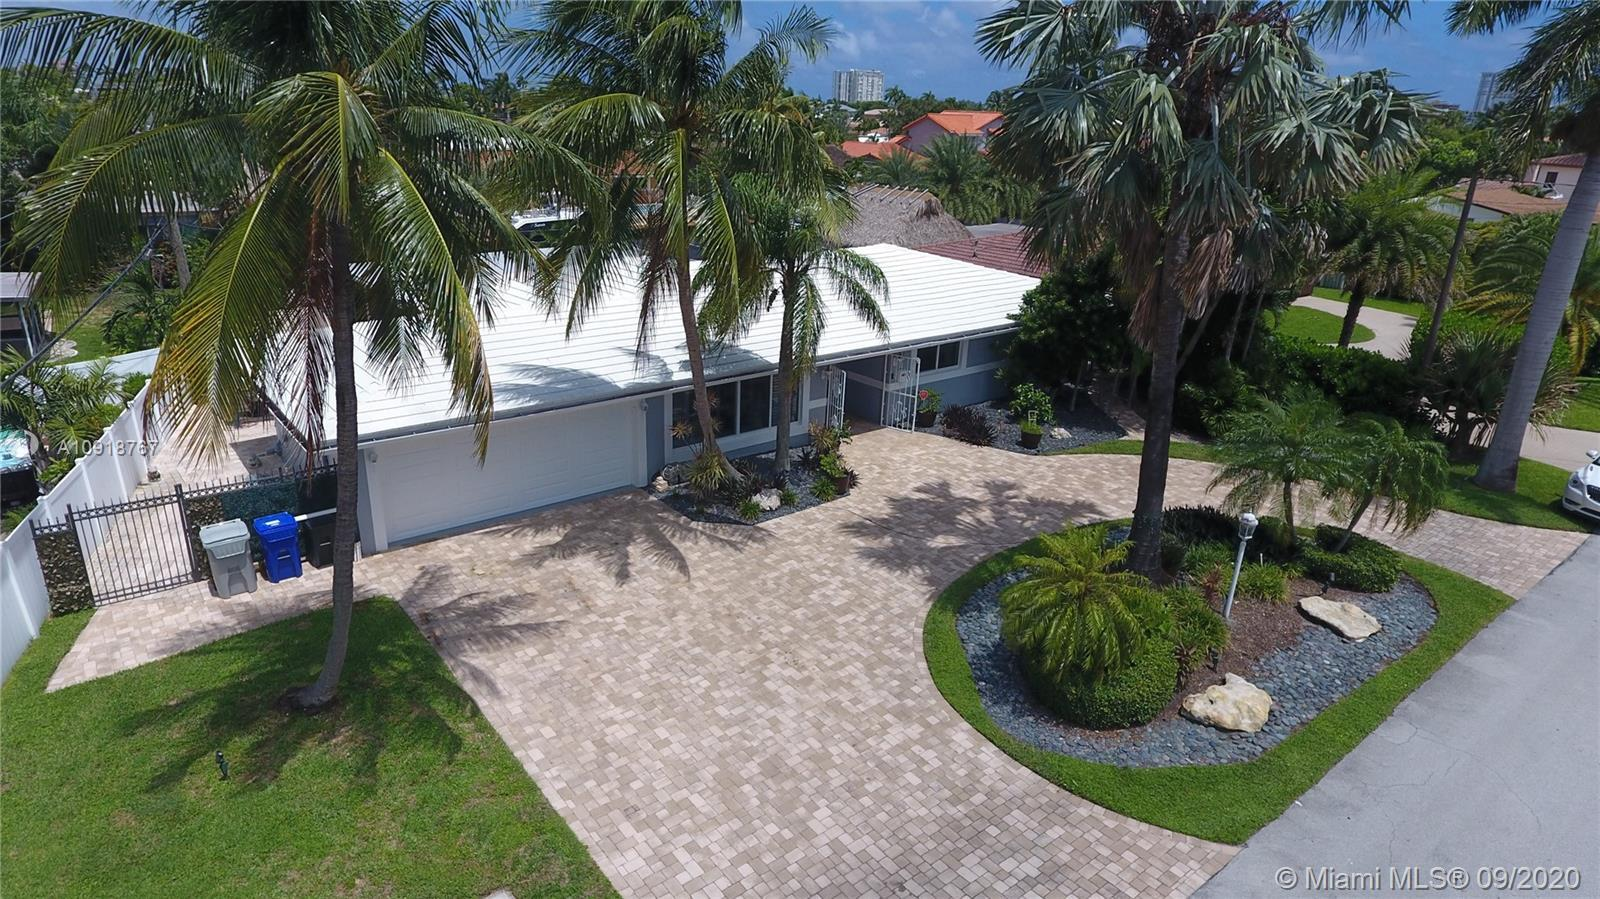 """CASA DE KAI"" DRAMATIC PRICE DROP$$SELLERS MOTIVATED! SOUTH FLORIDA BOATER'S PARADISE EXQUISITE POOL"